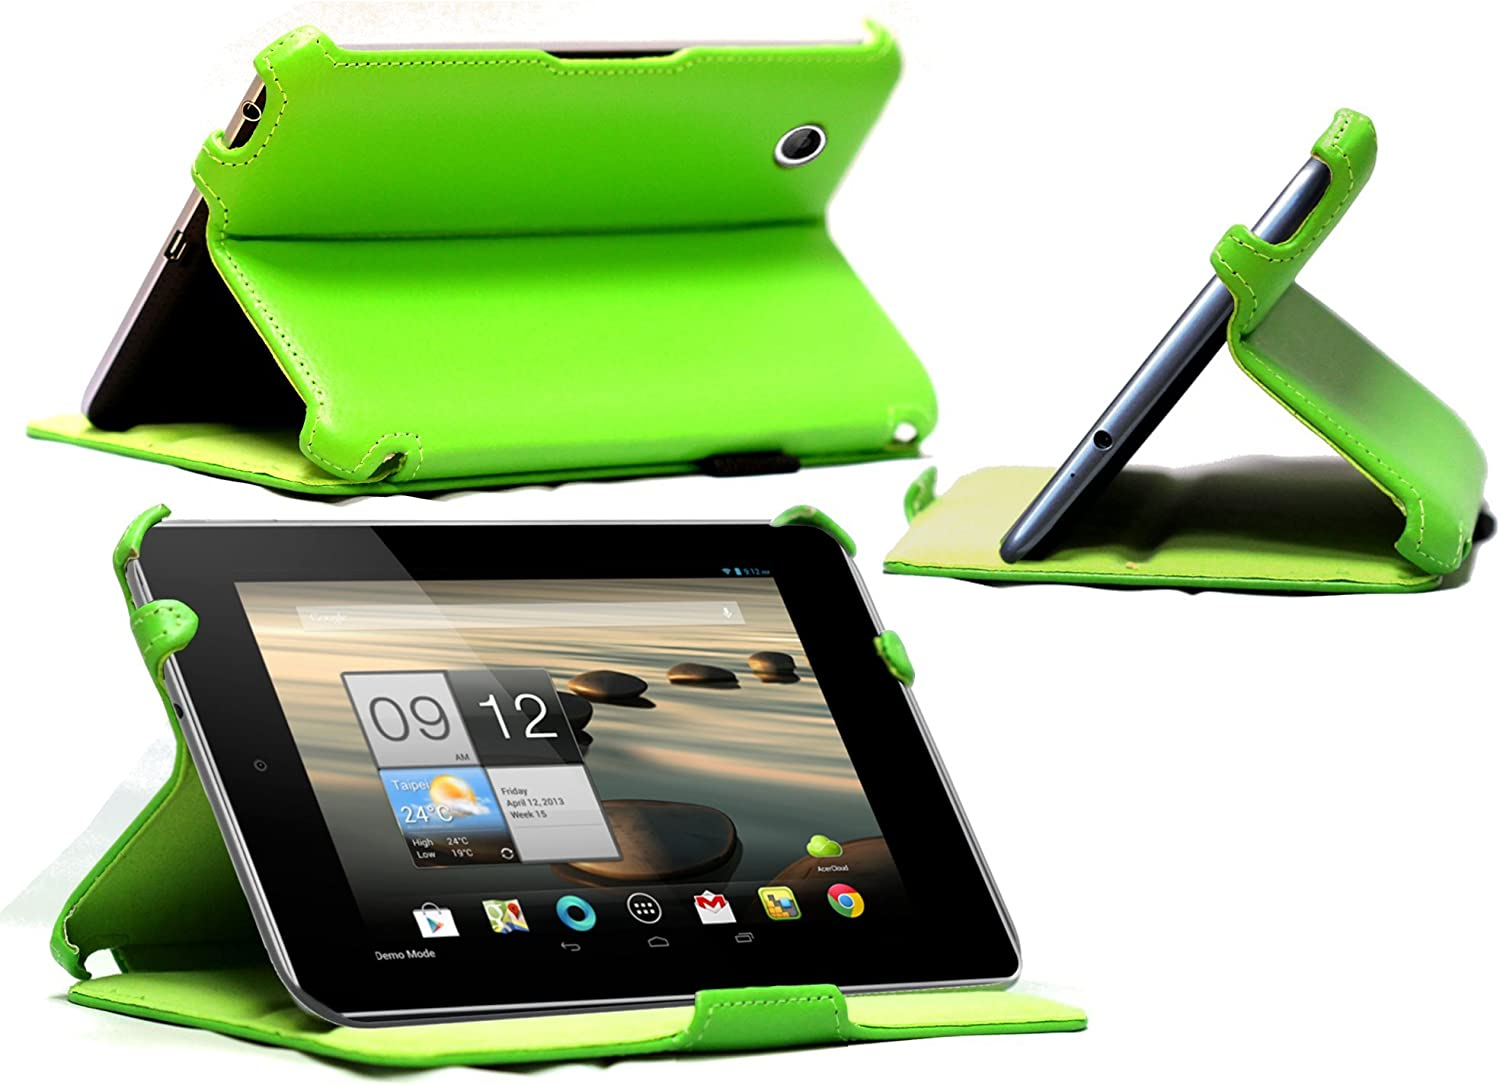 MiTAB Faux Leather Case Cover with Stand Compatible with The Acer Iconia A1 810 7.9 Inch (Multi Stand case, Green)